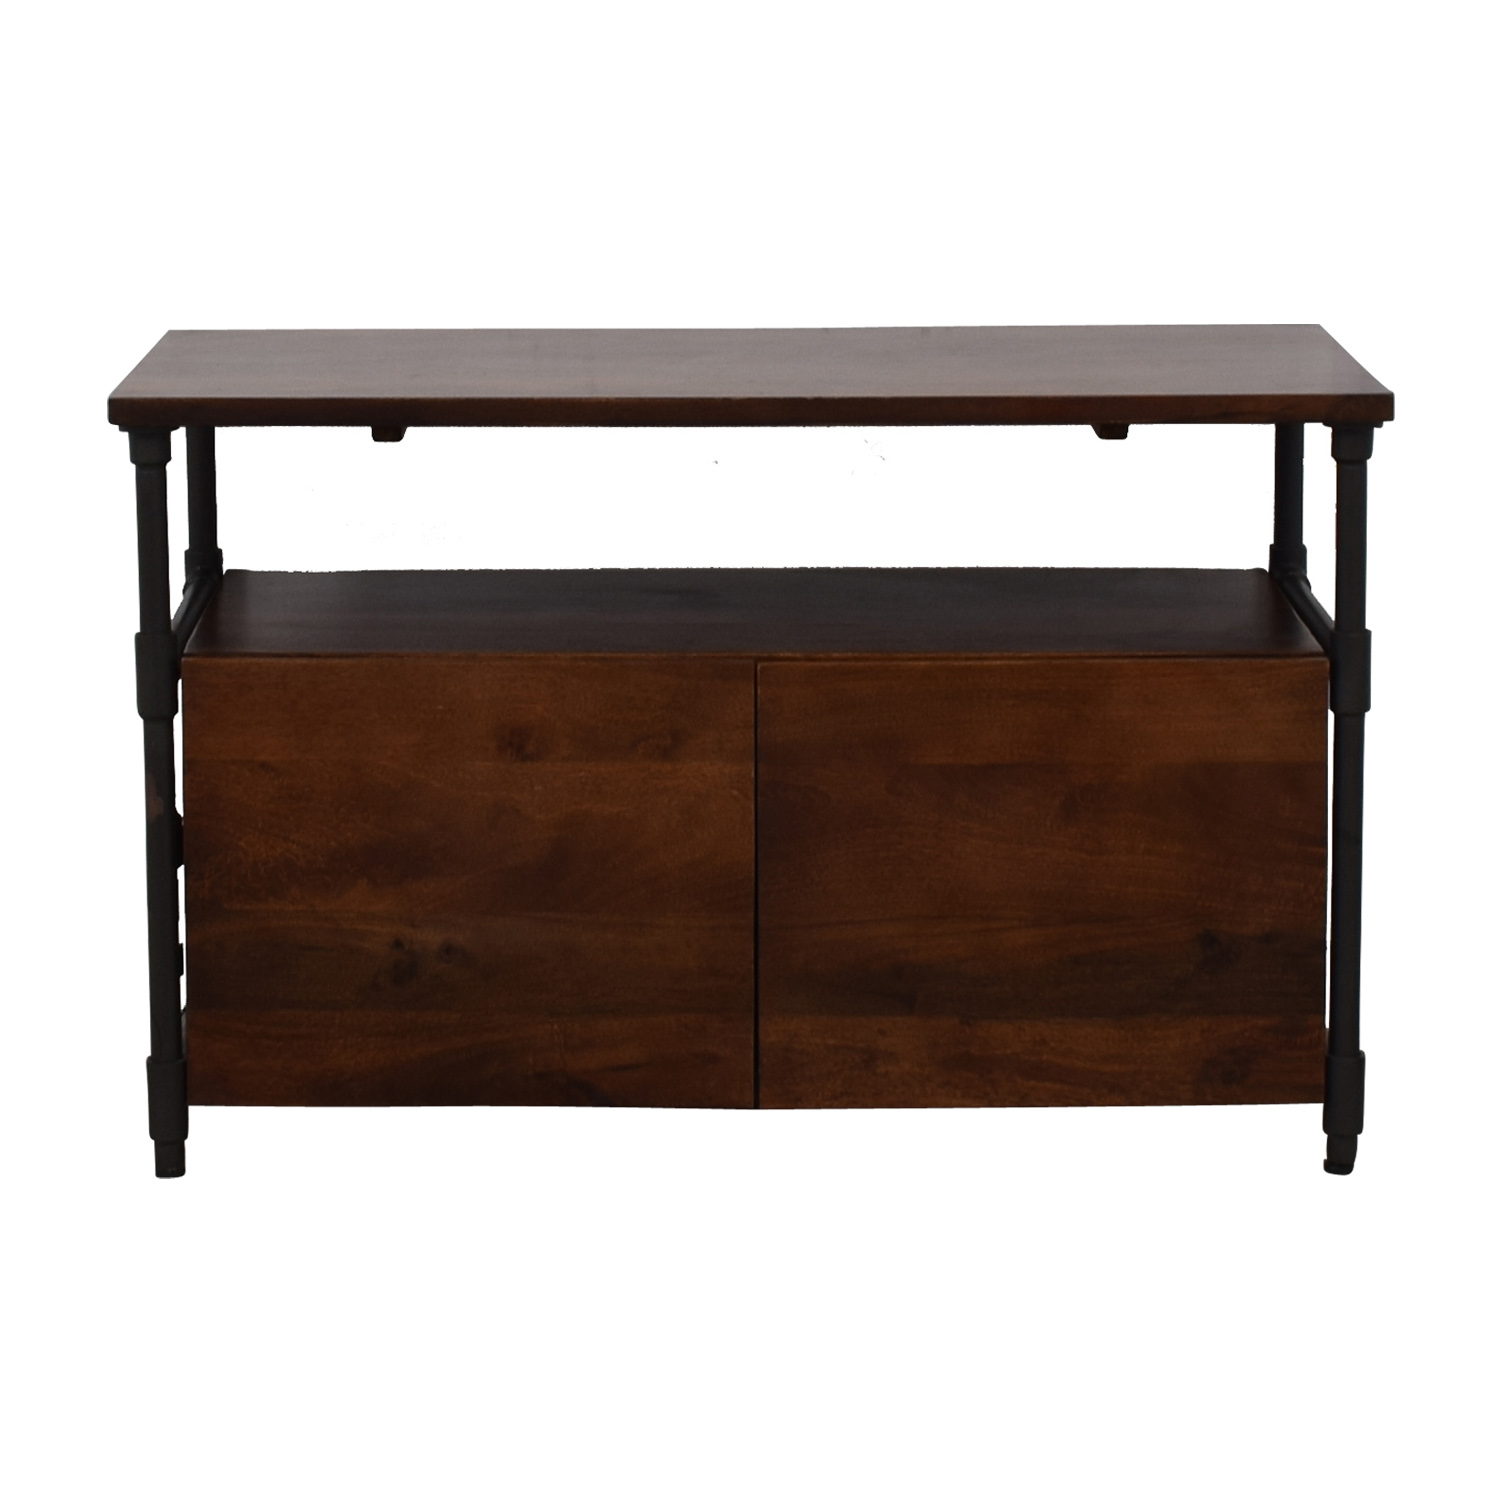 West Elm West Elm Pipe Media Console Short Cafe price